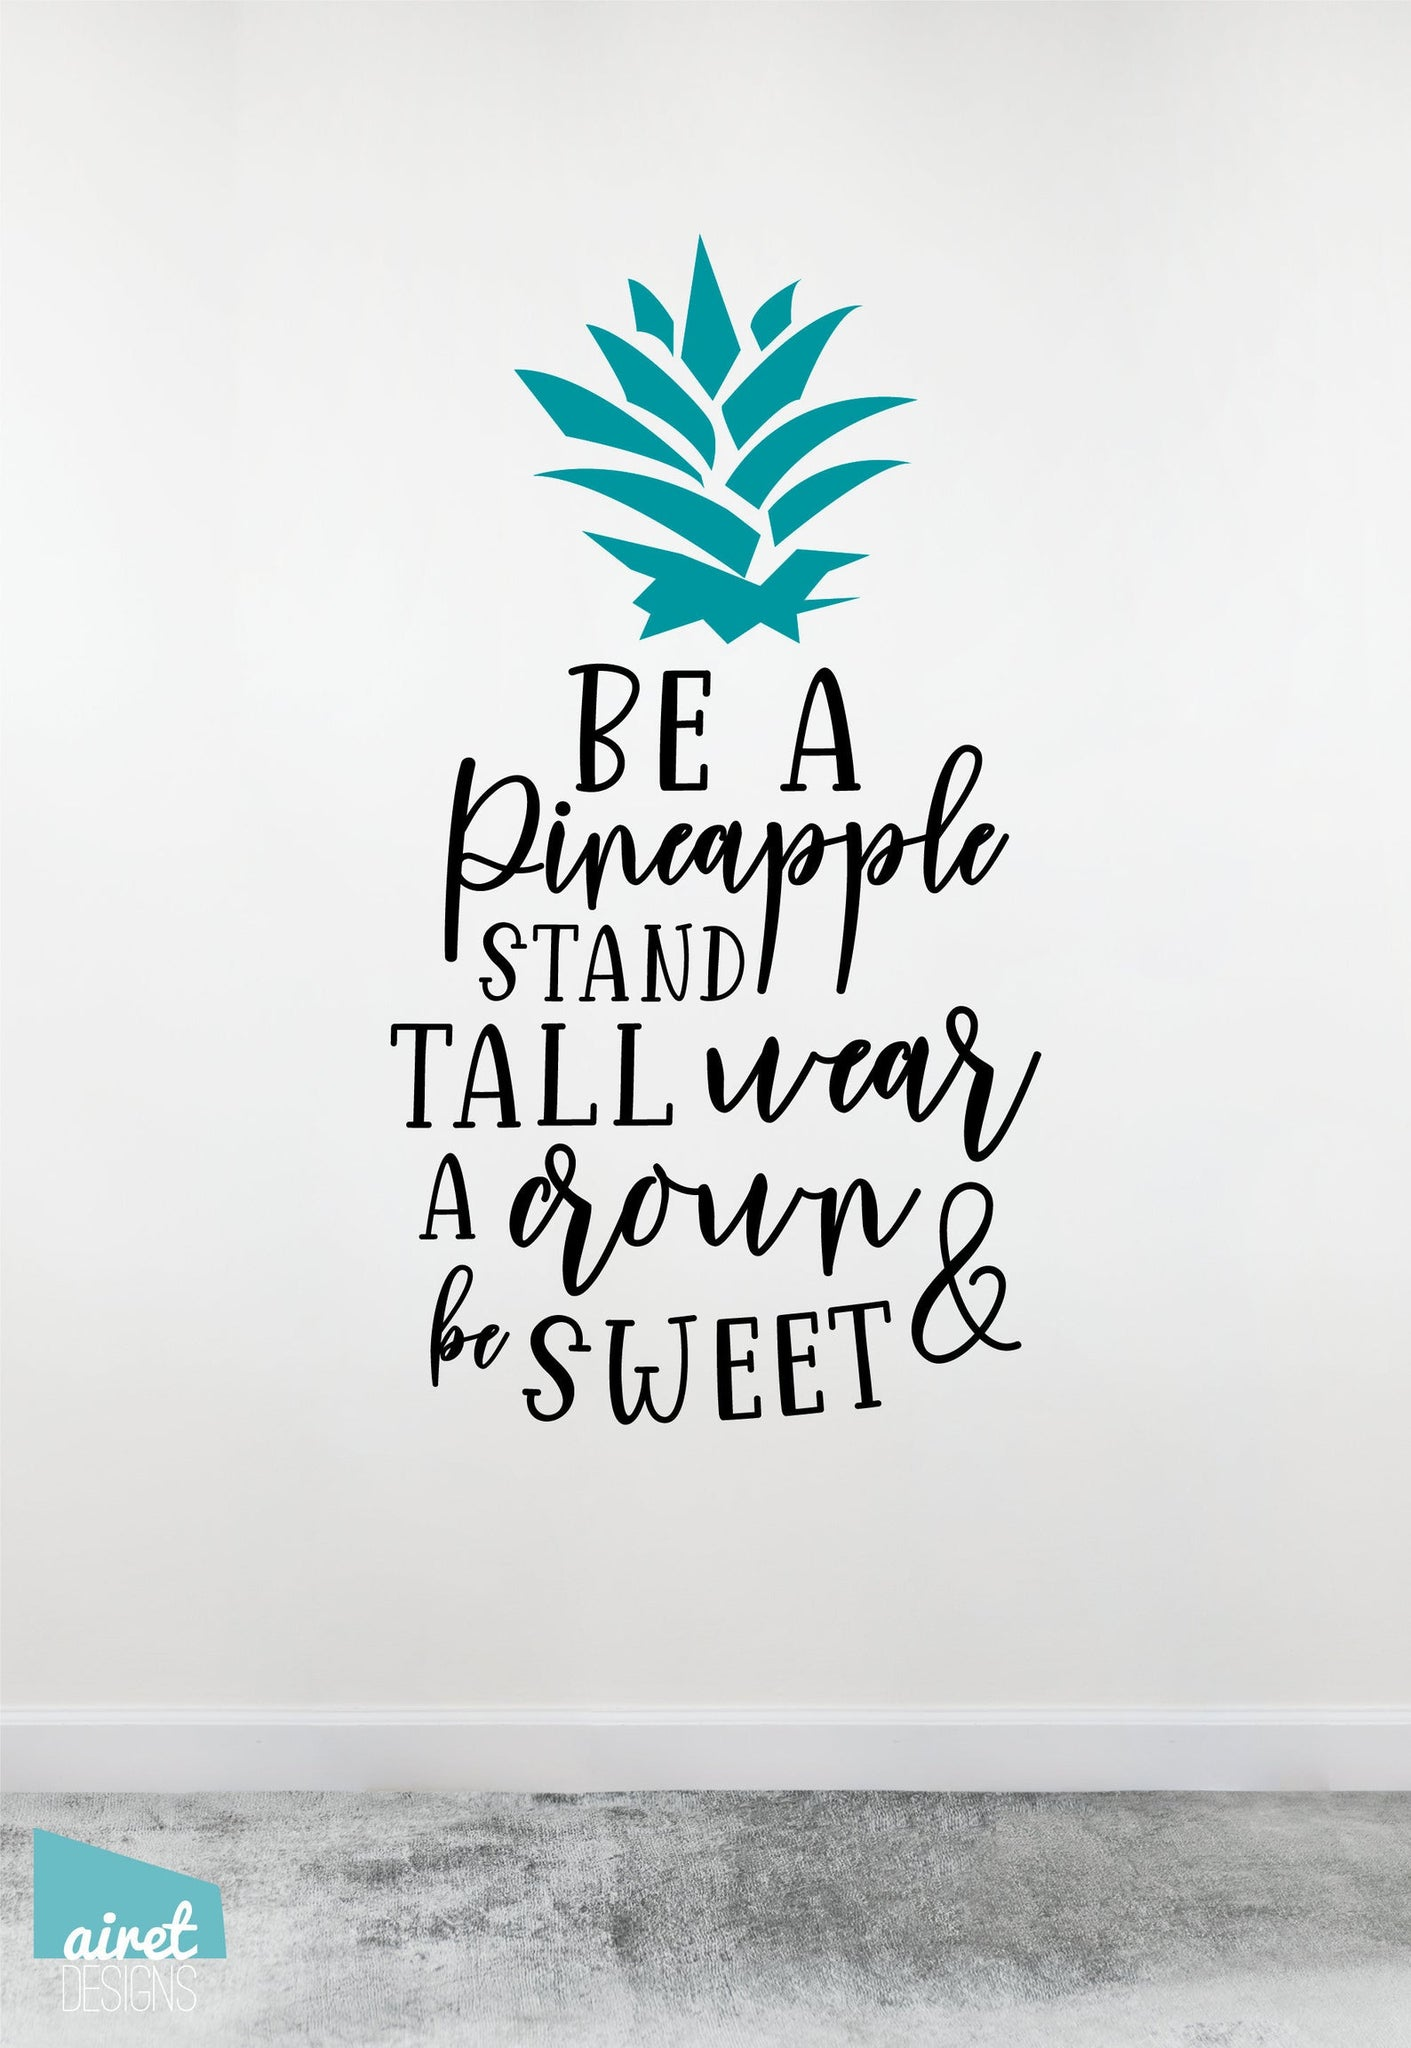 Be a Pineapple Stand Tall Wear a Crown & Be Sweet - Vinyl Decal Wall Art Decor Bedroom Nursery Quote Art Children Tween Teen Girl Room v2